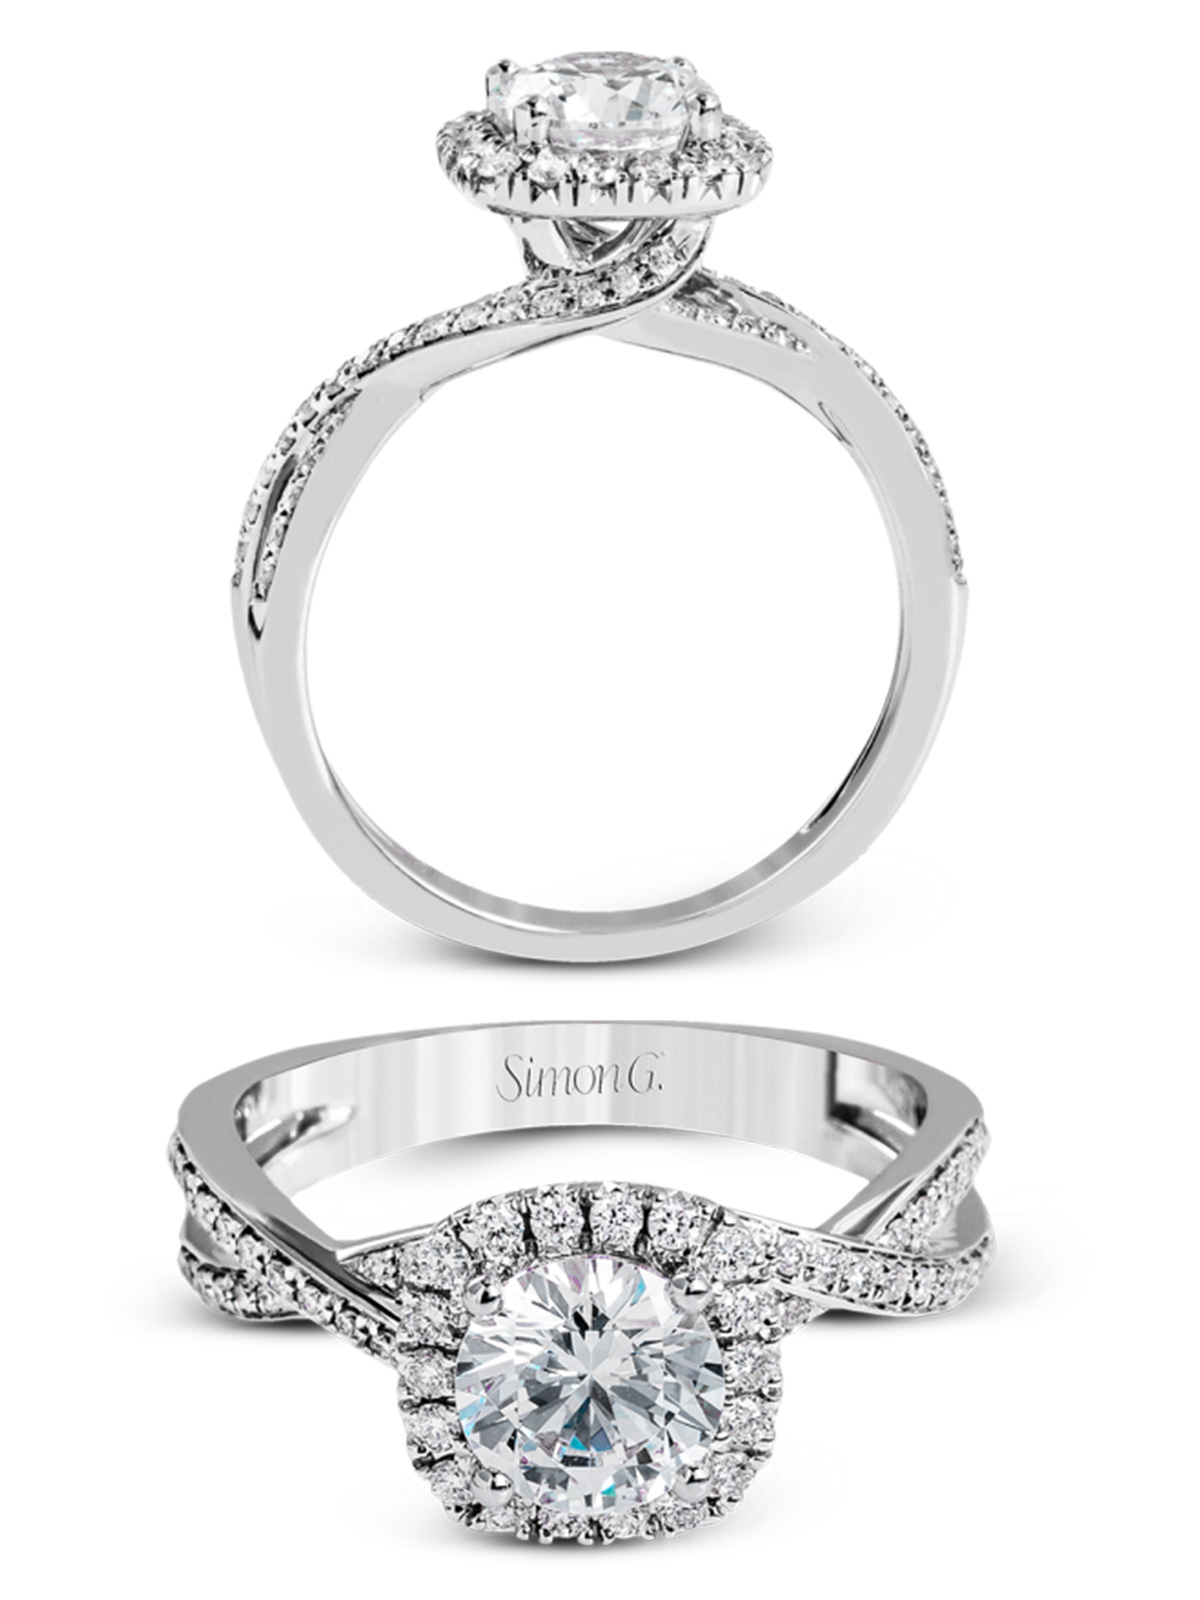 simon g jewelry 2017 trends diamond engagement rings mr1394 A F twisted shank white gold halo e ring